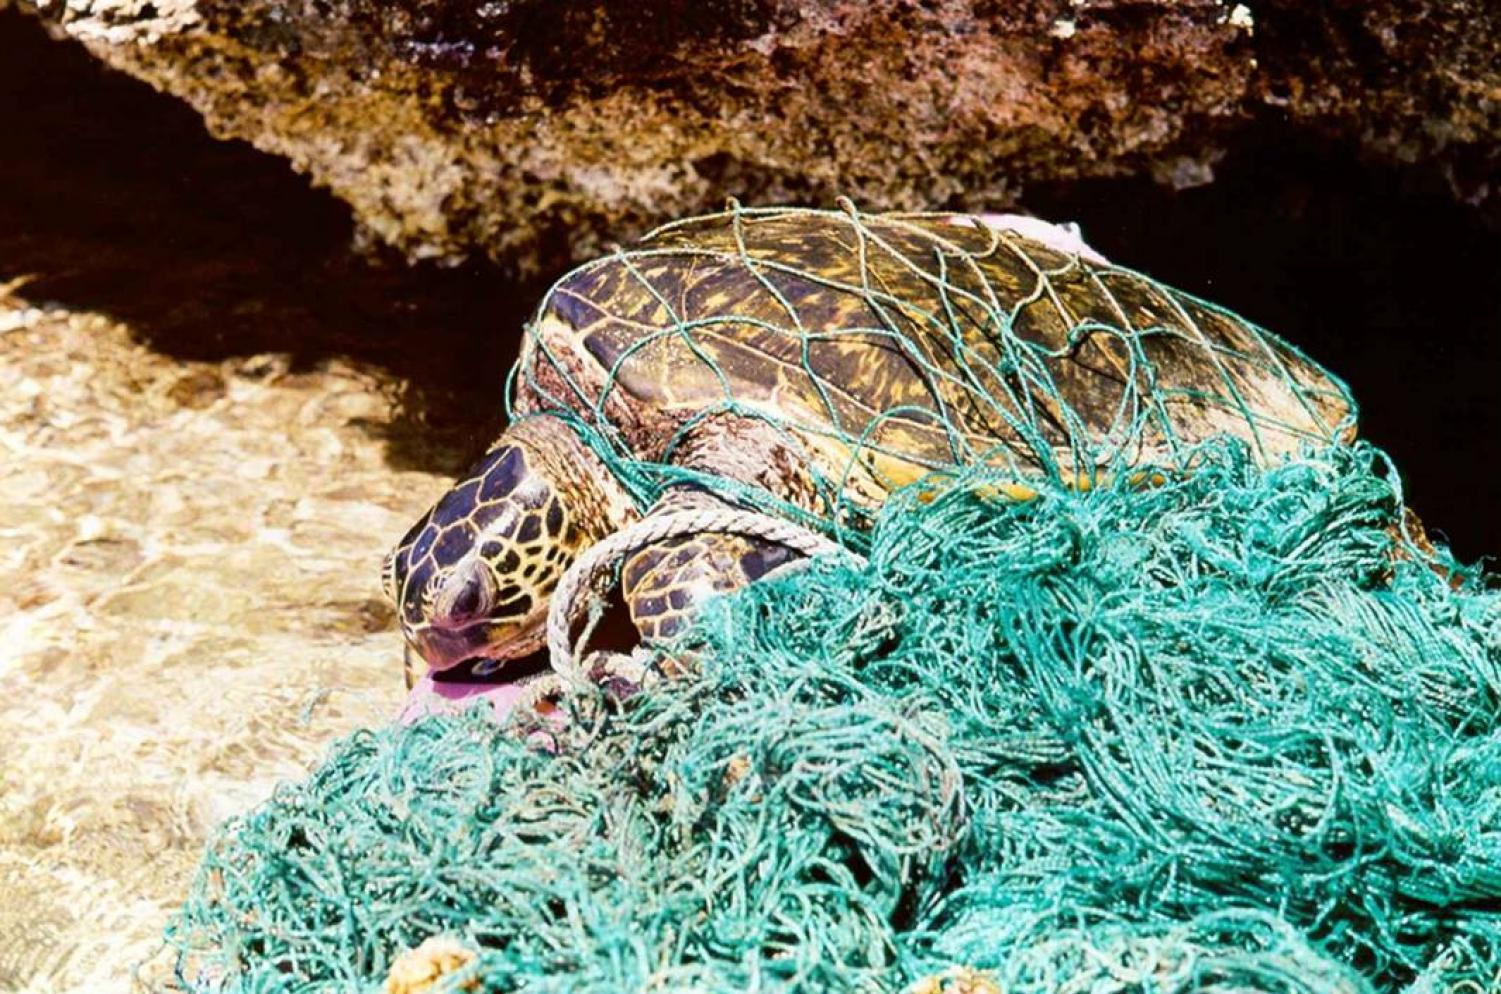 Fishing nets are common in the oceans and turtles are likely to be caught in them.